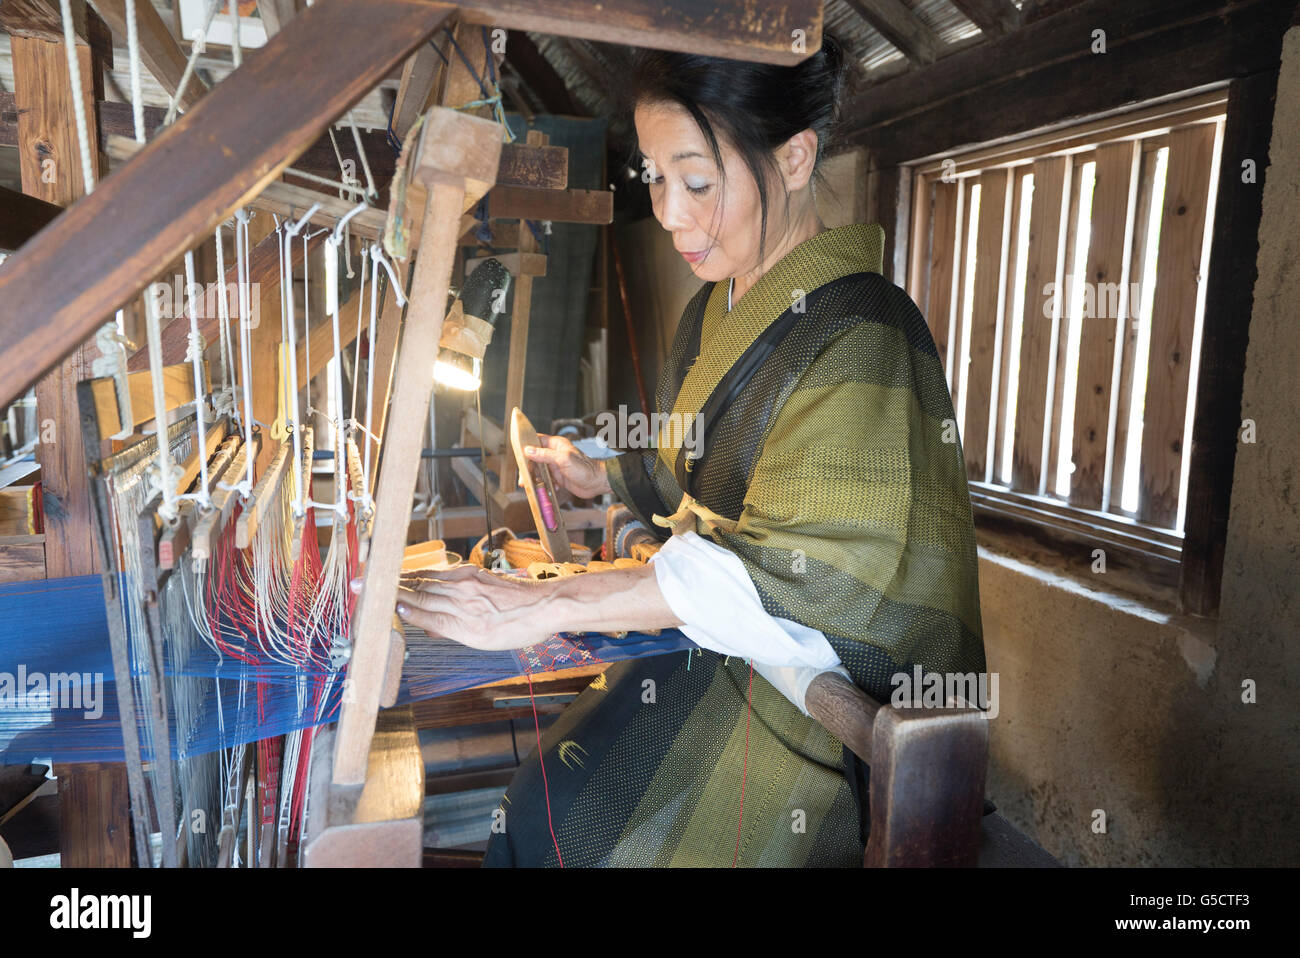 Traditional weaving on a loom at Ryukyu Mura, Okinawa, Japan - Stock Image